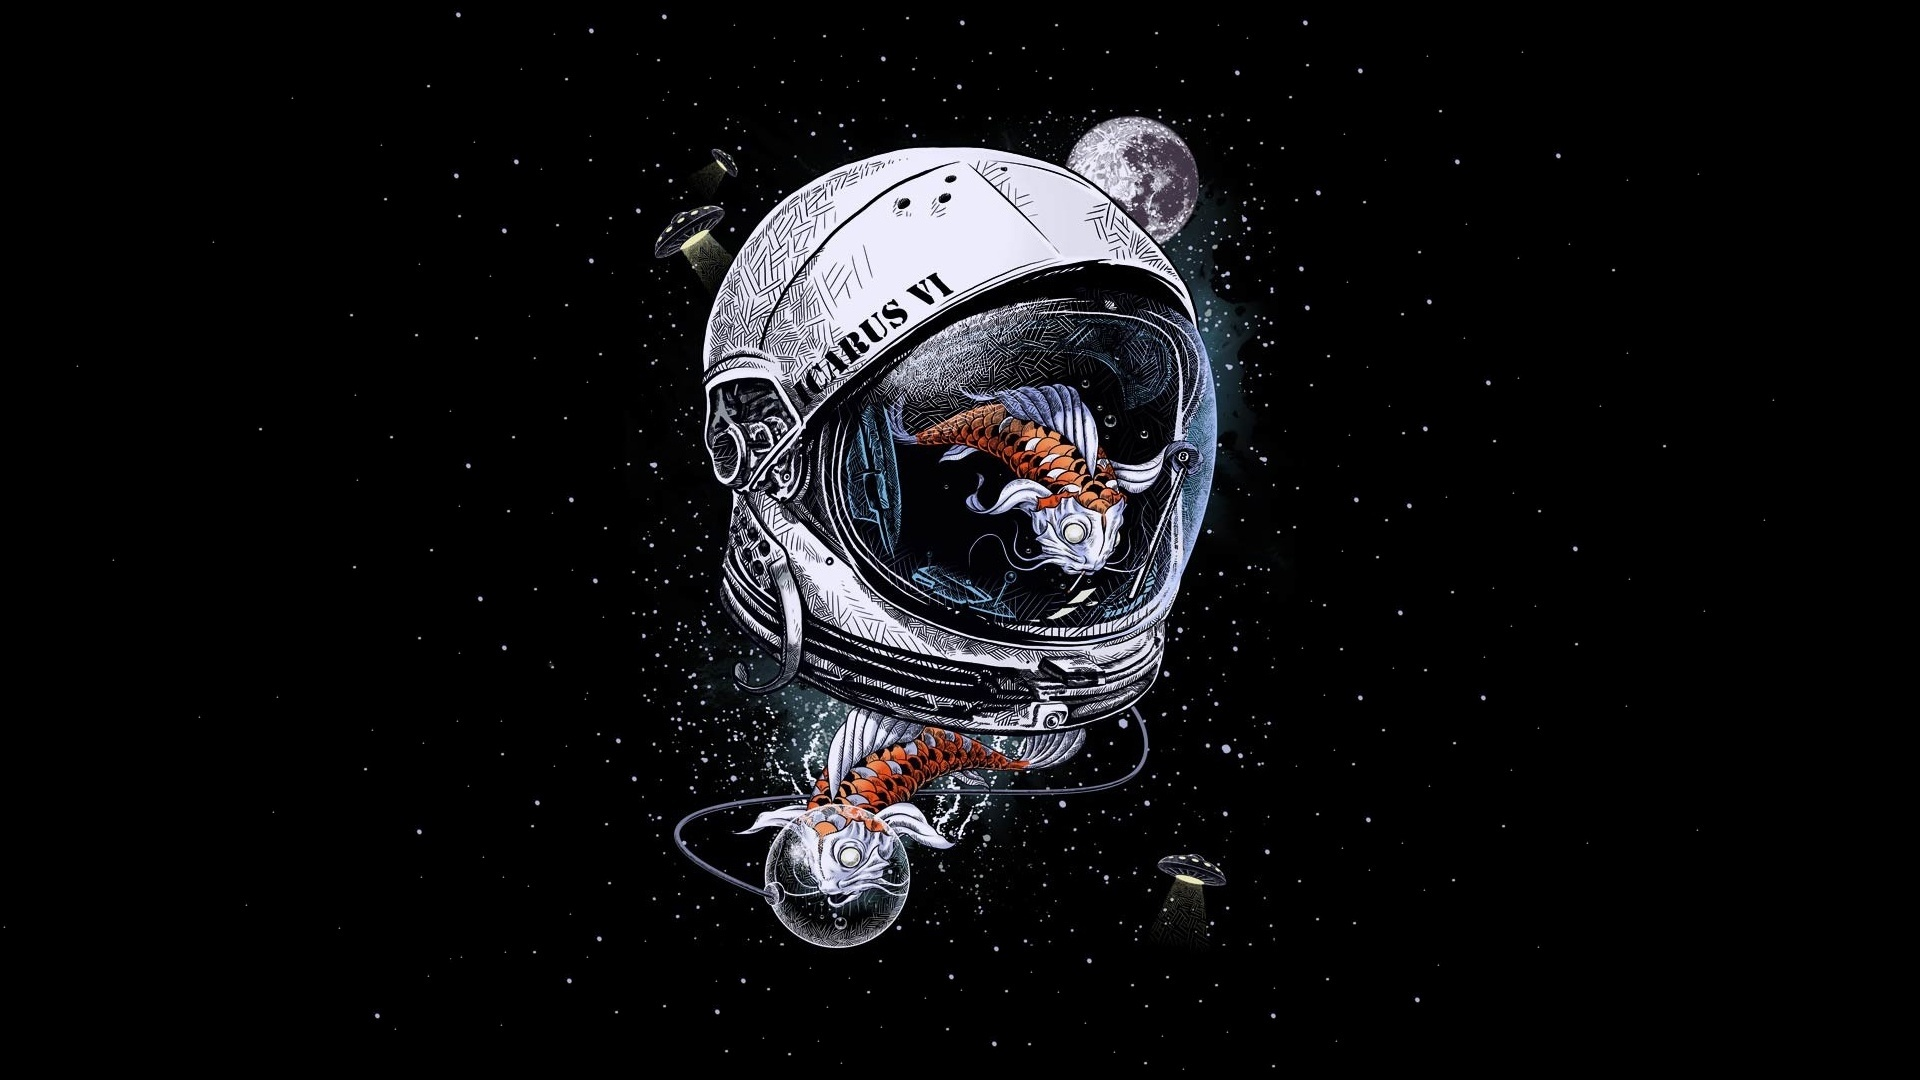 Astronaut Art wallpaper for computer